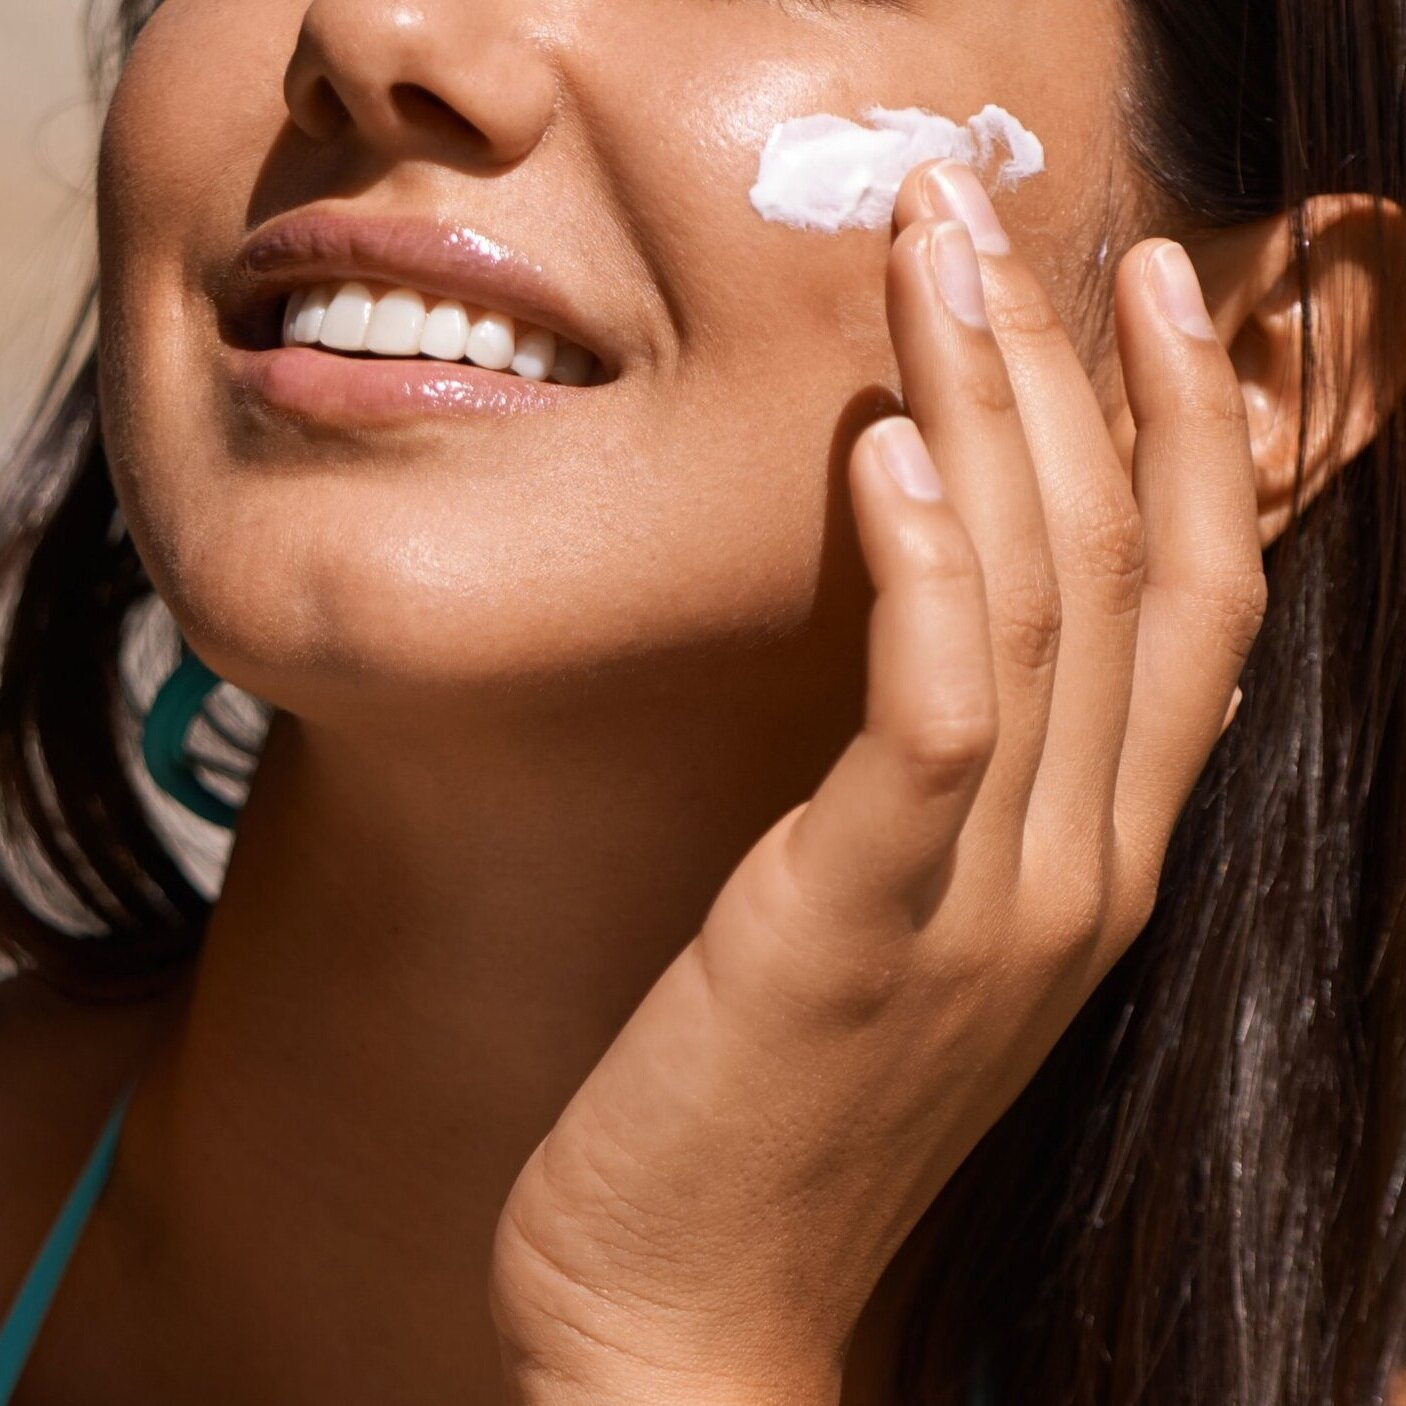 STEP SEVEN - PROTECTSPF isn't just about protection. It's also the best way to prevent aging, pigmentation, acne scarring, and dehydration. Sunscreen is just one vital part of a strategy that should also include seeking shade and covering up with clothing, including wide-brimmed hats and UV-blocking sunglasses.